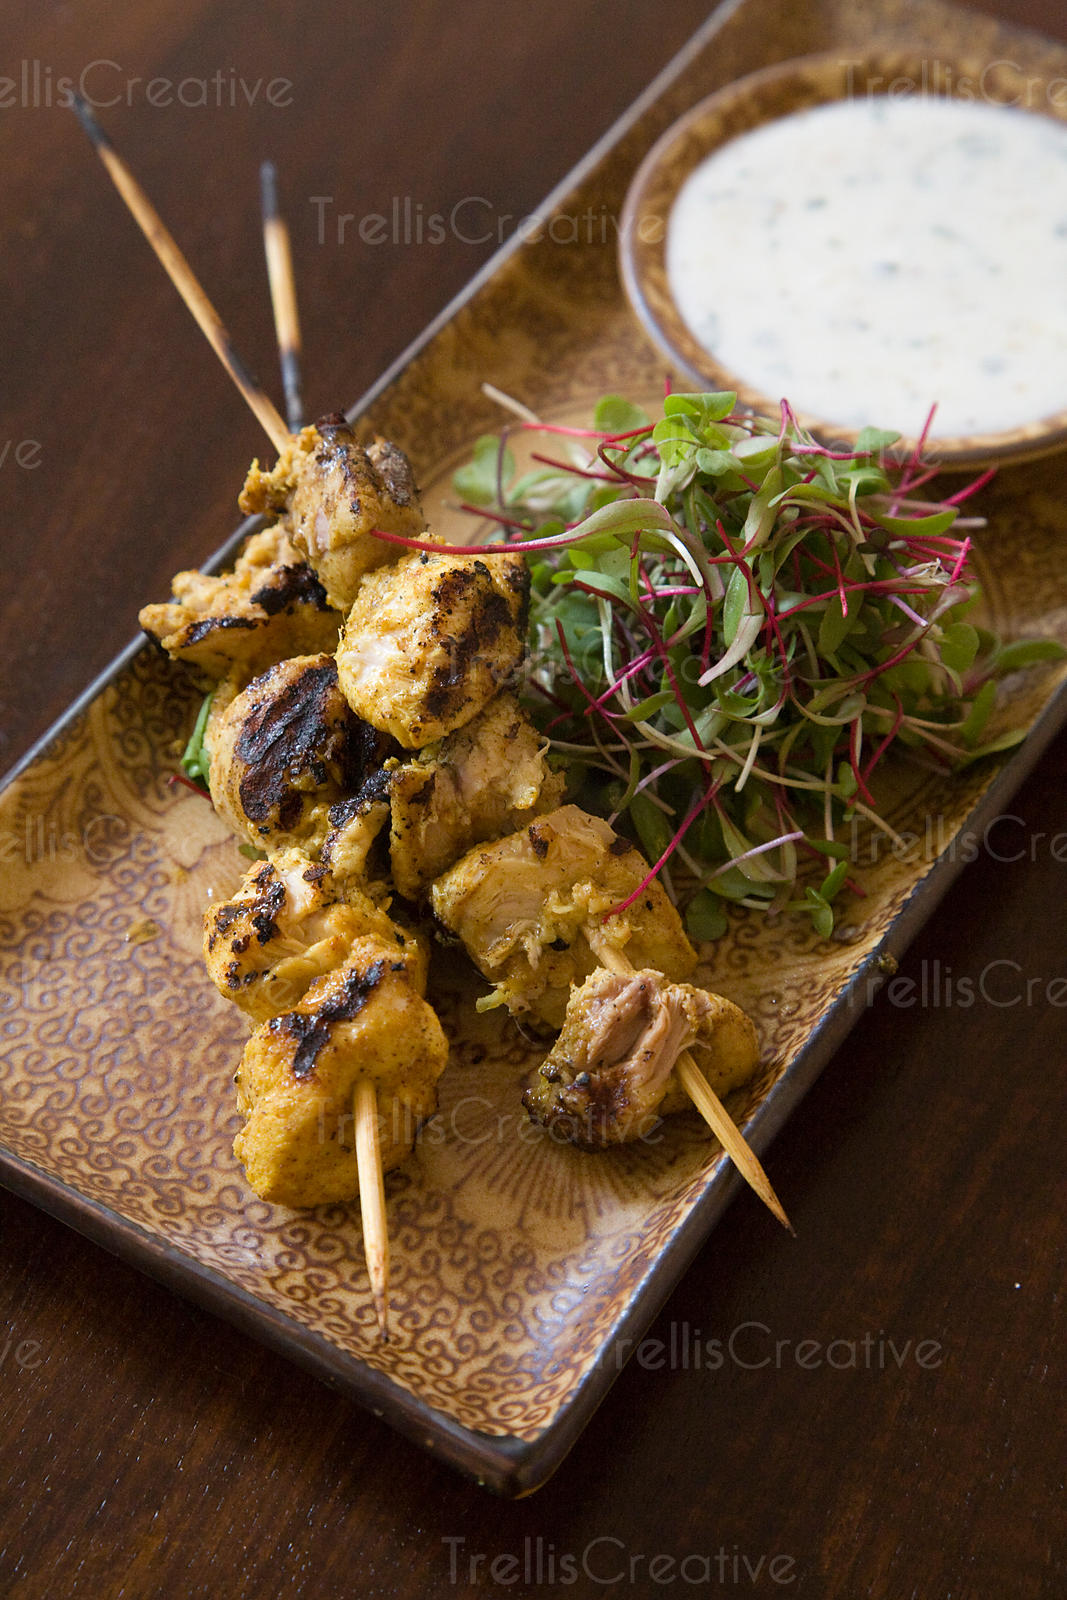 Skewered grilled chicken and yogurt sauce with baby greens